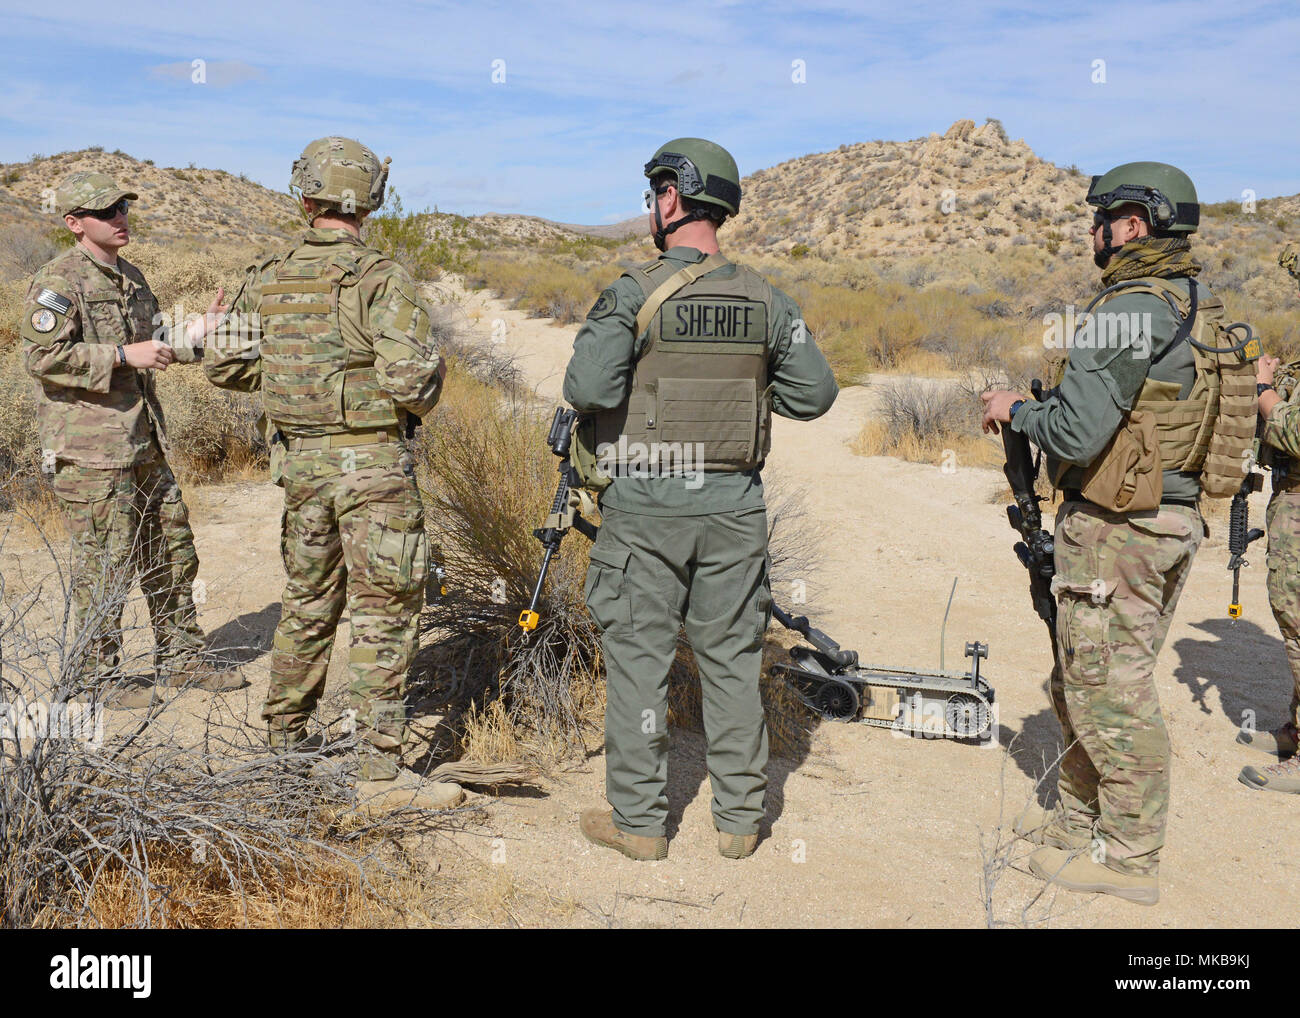 The Kern County Sheriff's Office Bomb Squad joined 12